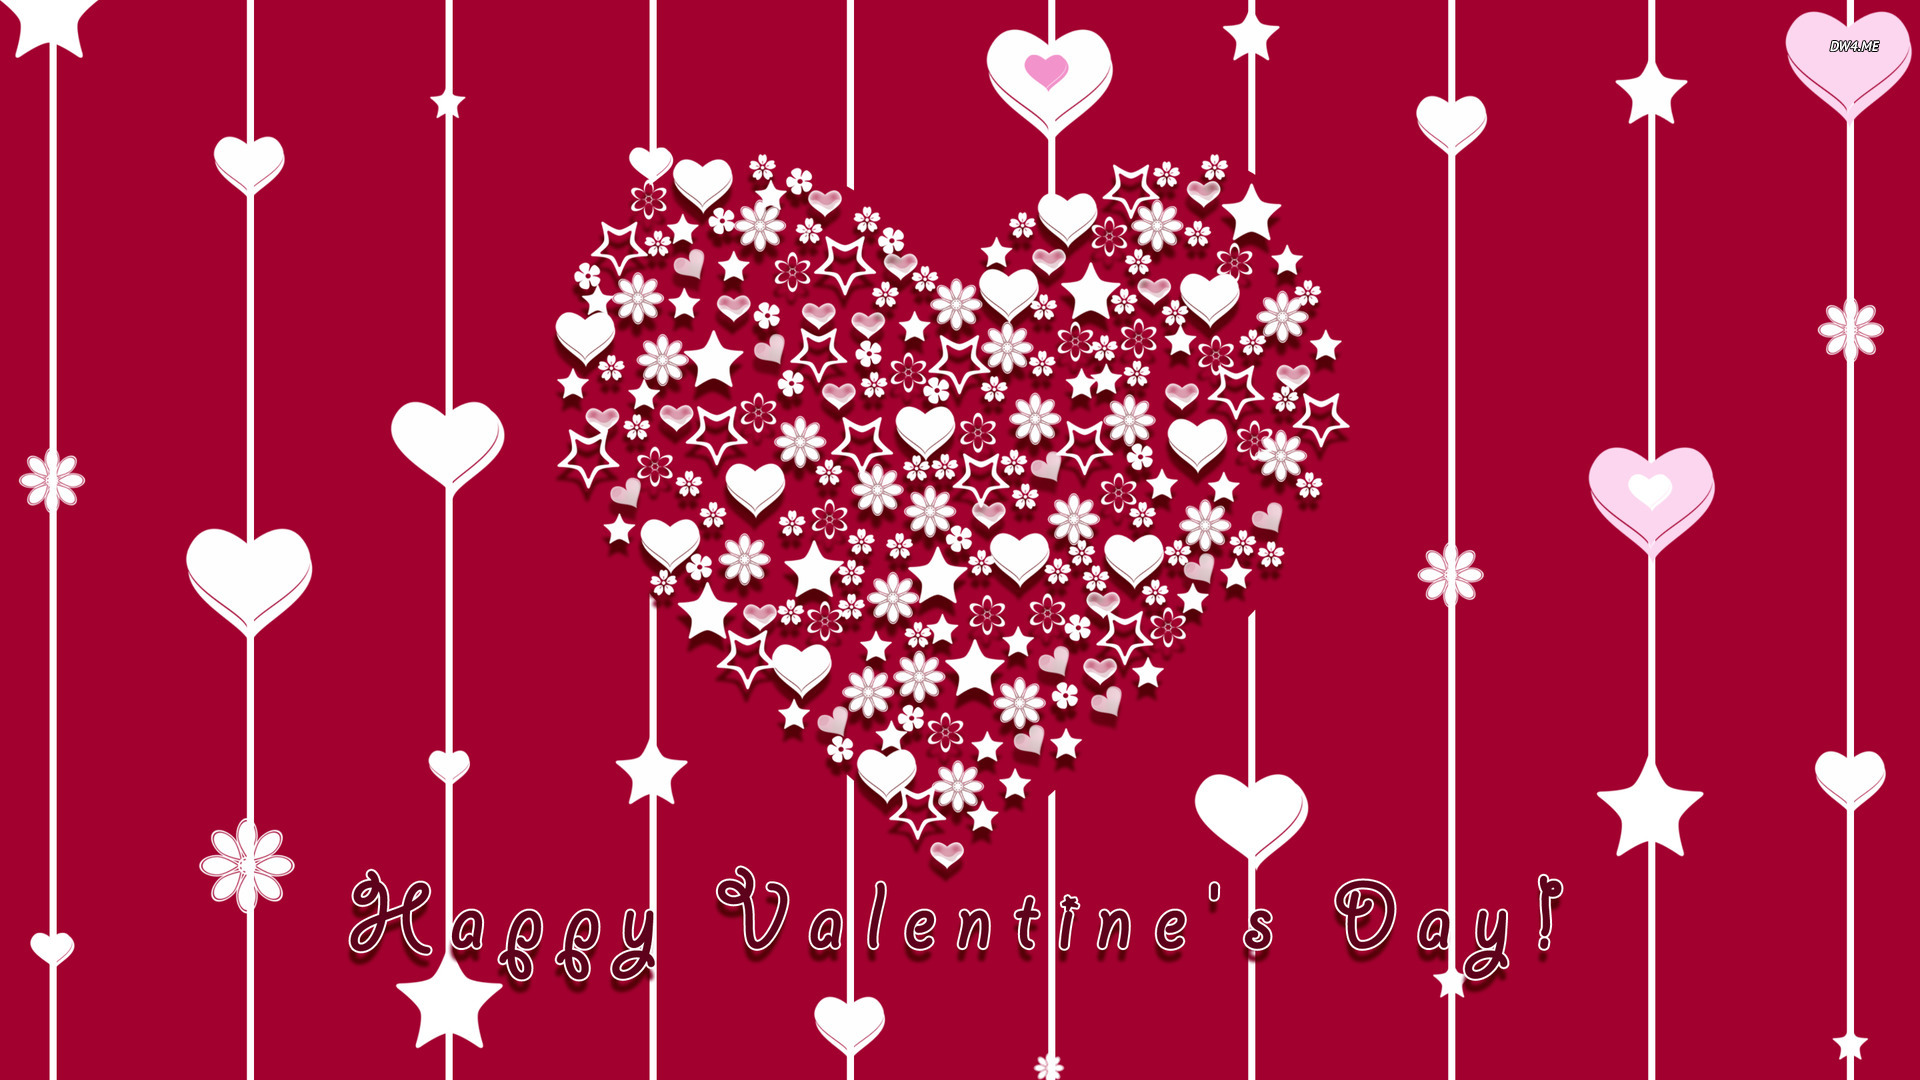 happy valentines day hd wallpapers - wallpaper, high definition